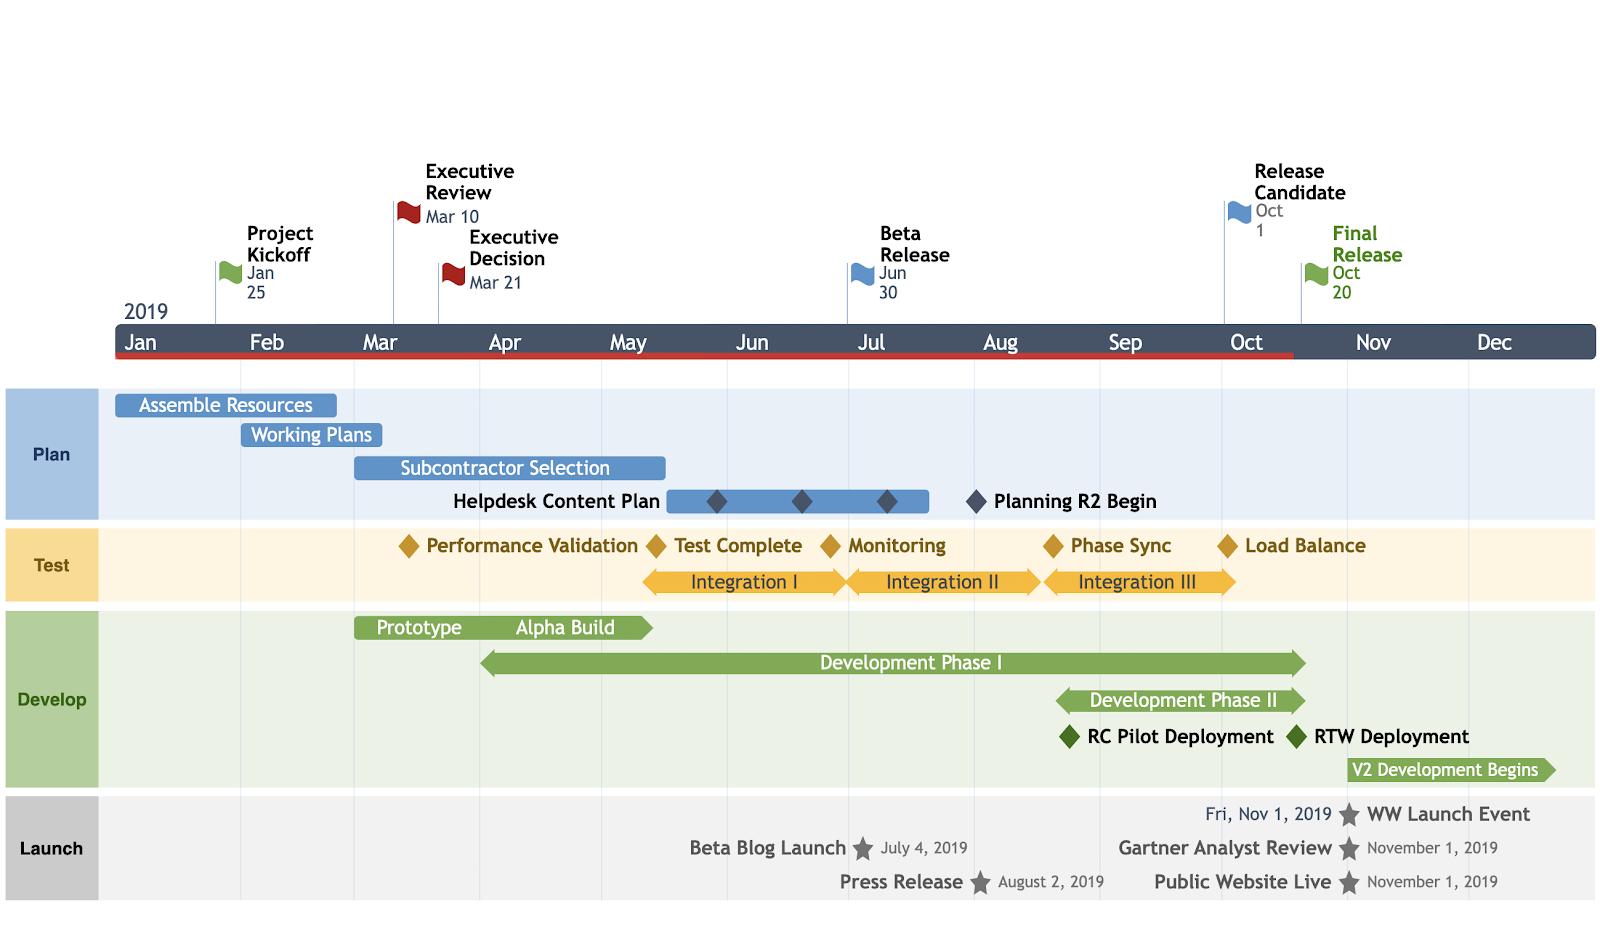 Office Timeline product roadmap template